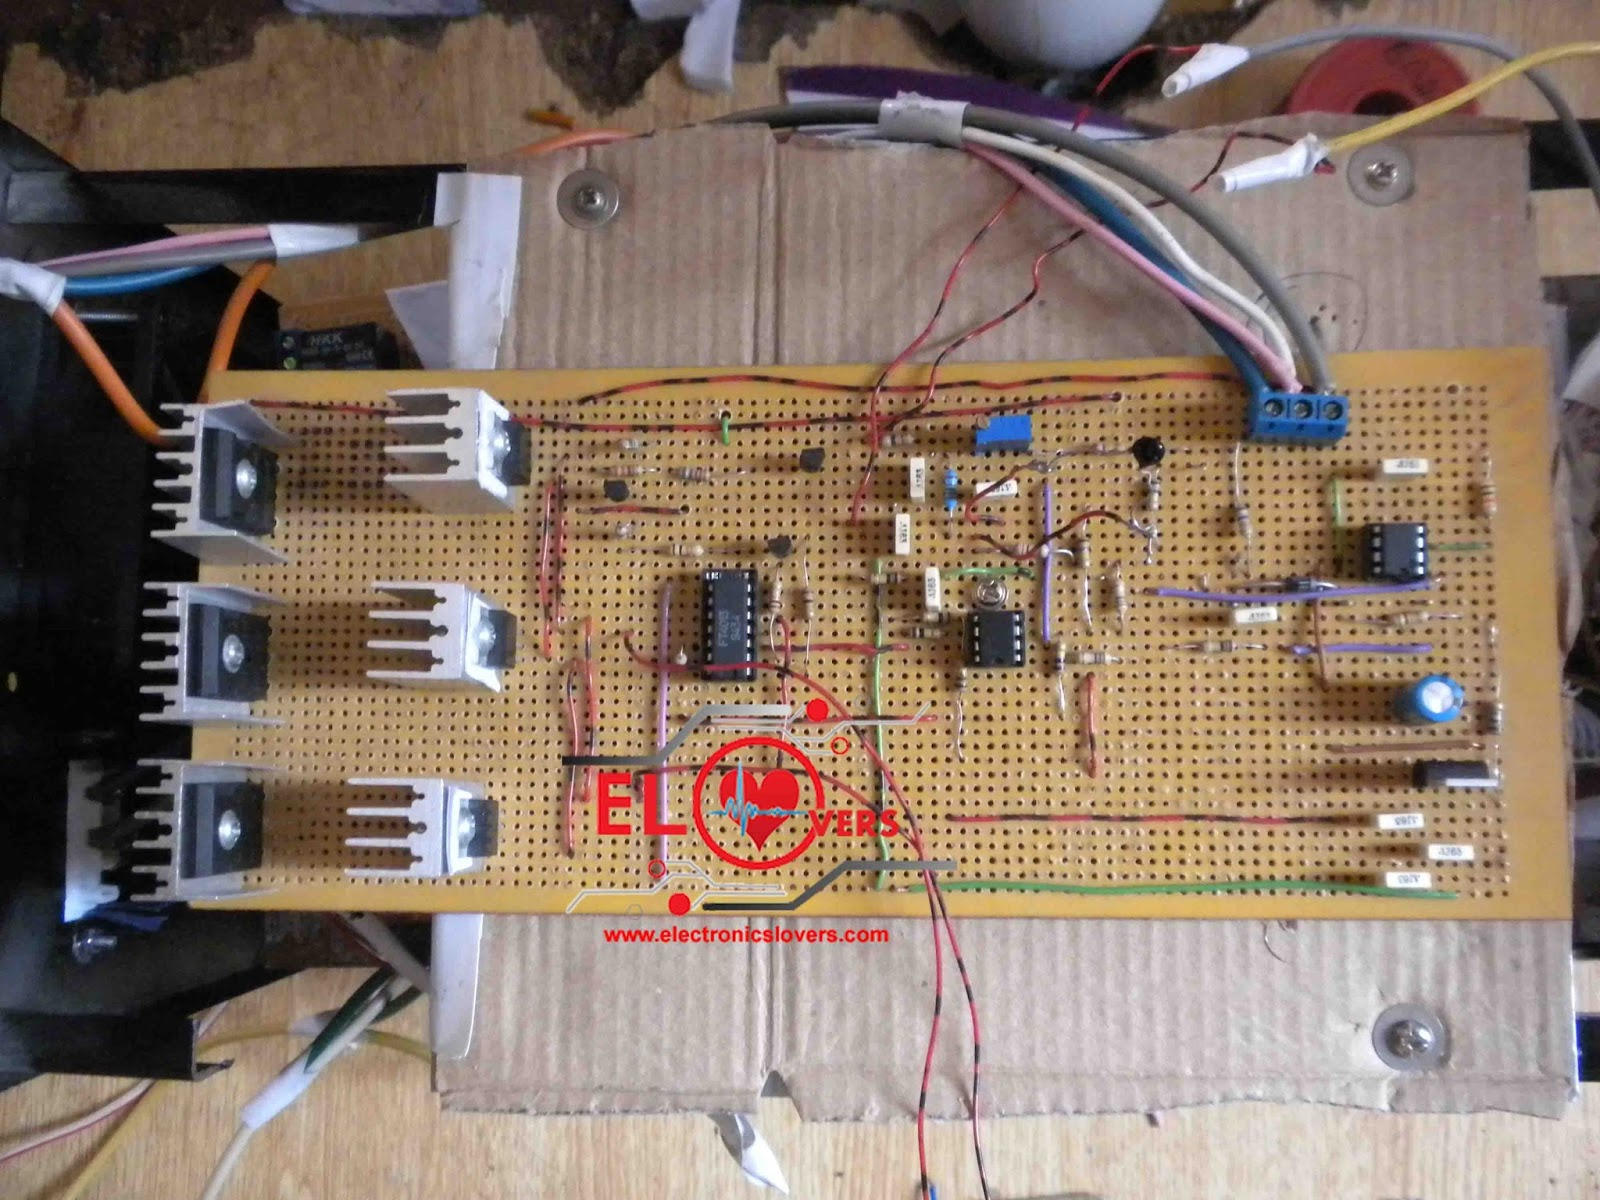 Home Made MPPT CHARGE CONTROLLER WITH 3LEVEL CHARGING  Electronics Lovers ~ Technology We Love